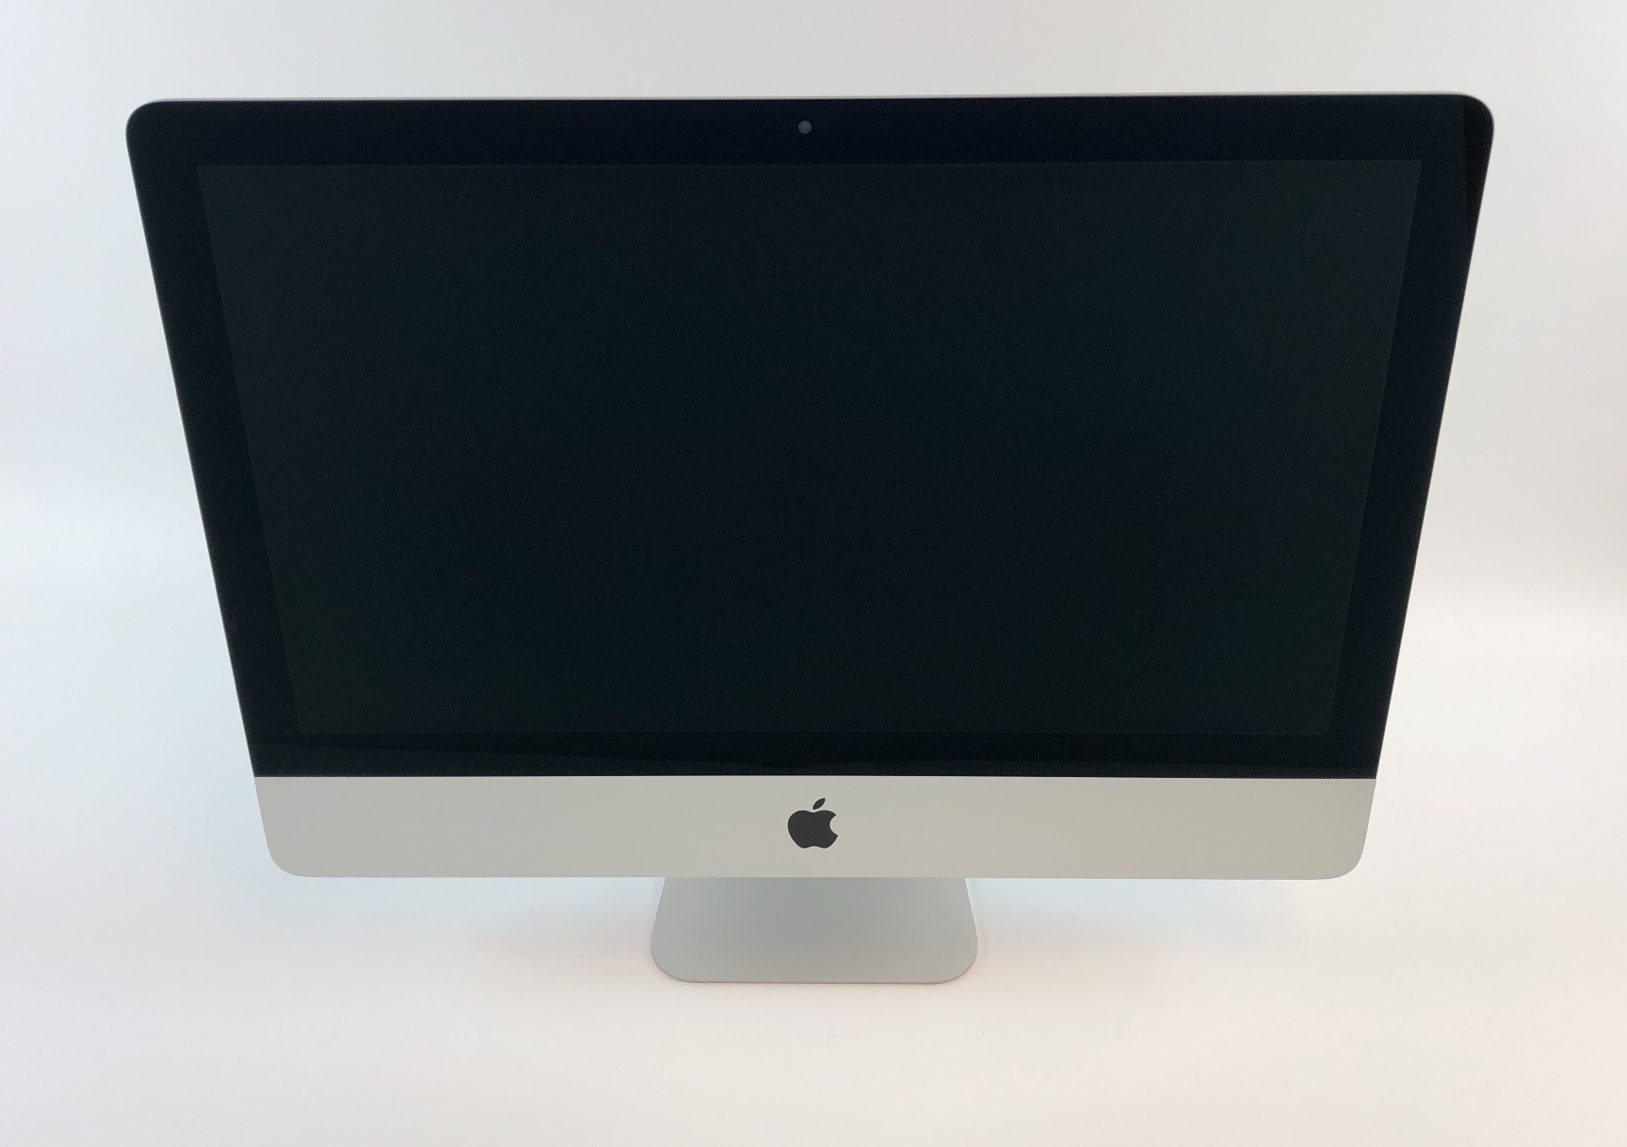 "iMac 21.5"" Retina 4K Late 2015 (Intel Quad-Core i5 3.1 GHz 8 GB RAM 1 TB HDD), Intel Quad-Core i5 3.1 GHz, 8 GB RAM, 1 TB HDD, image 1"